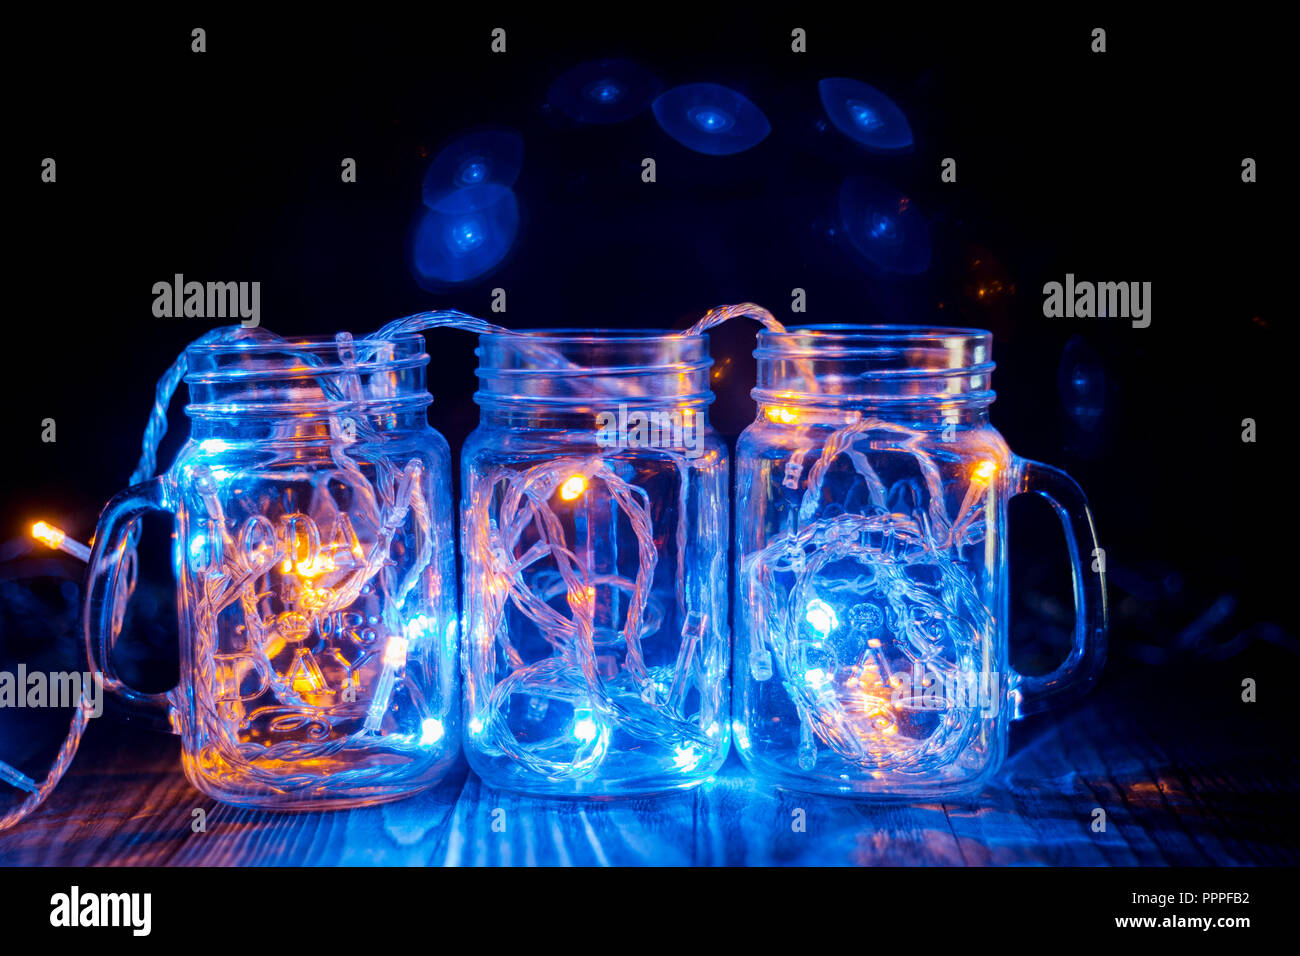 Colorful Lights In A Glass Transparent Jars Christmas Lights In The